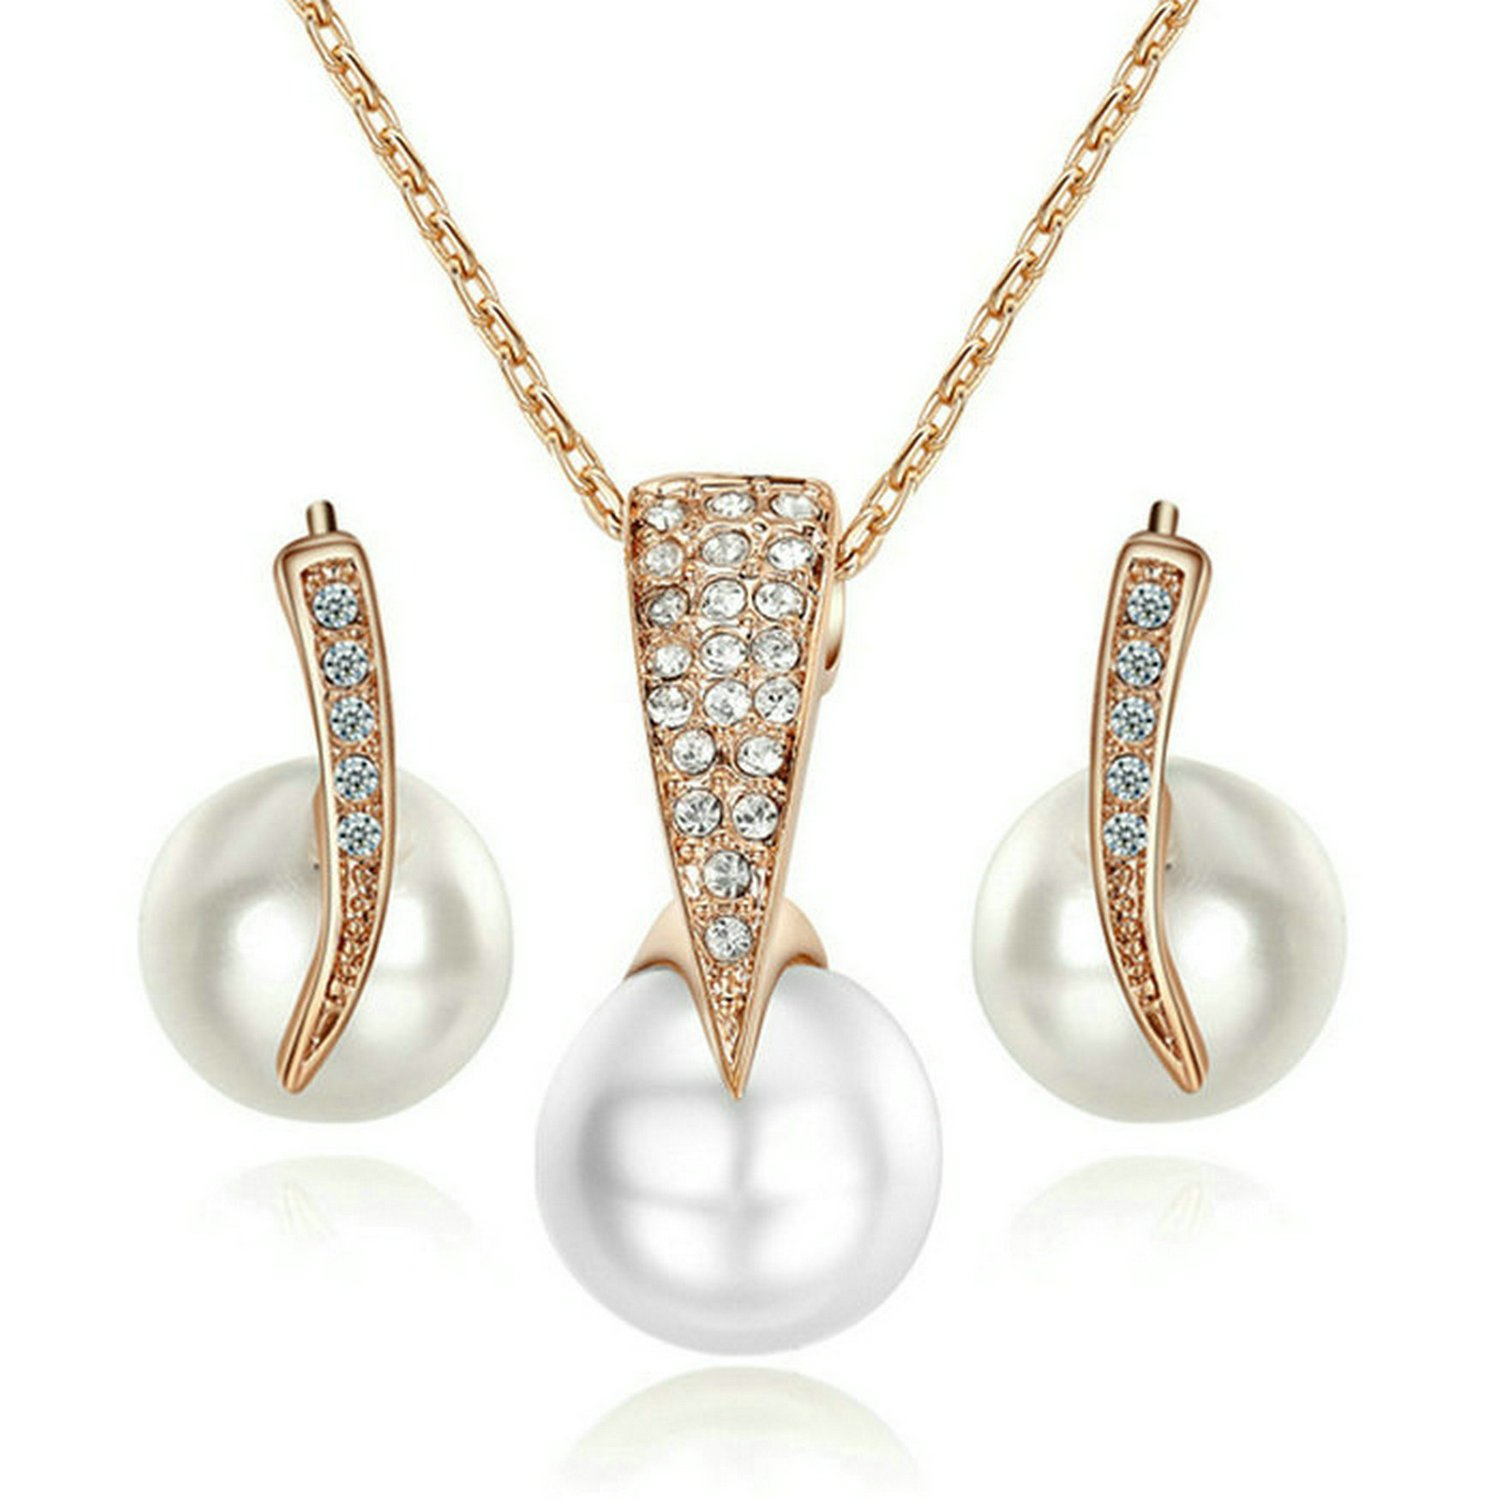 Yoursfs Pearl Jewelry Sets For Women Bridal 18K Rose GP Crystal Pendant Necklace and Earrings Set S275R1-CA